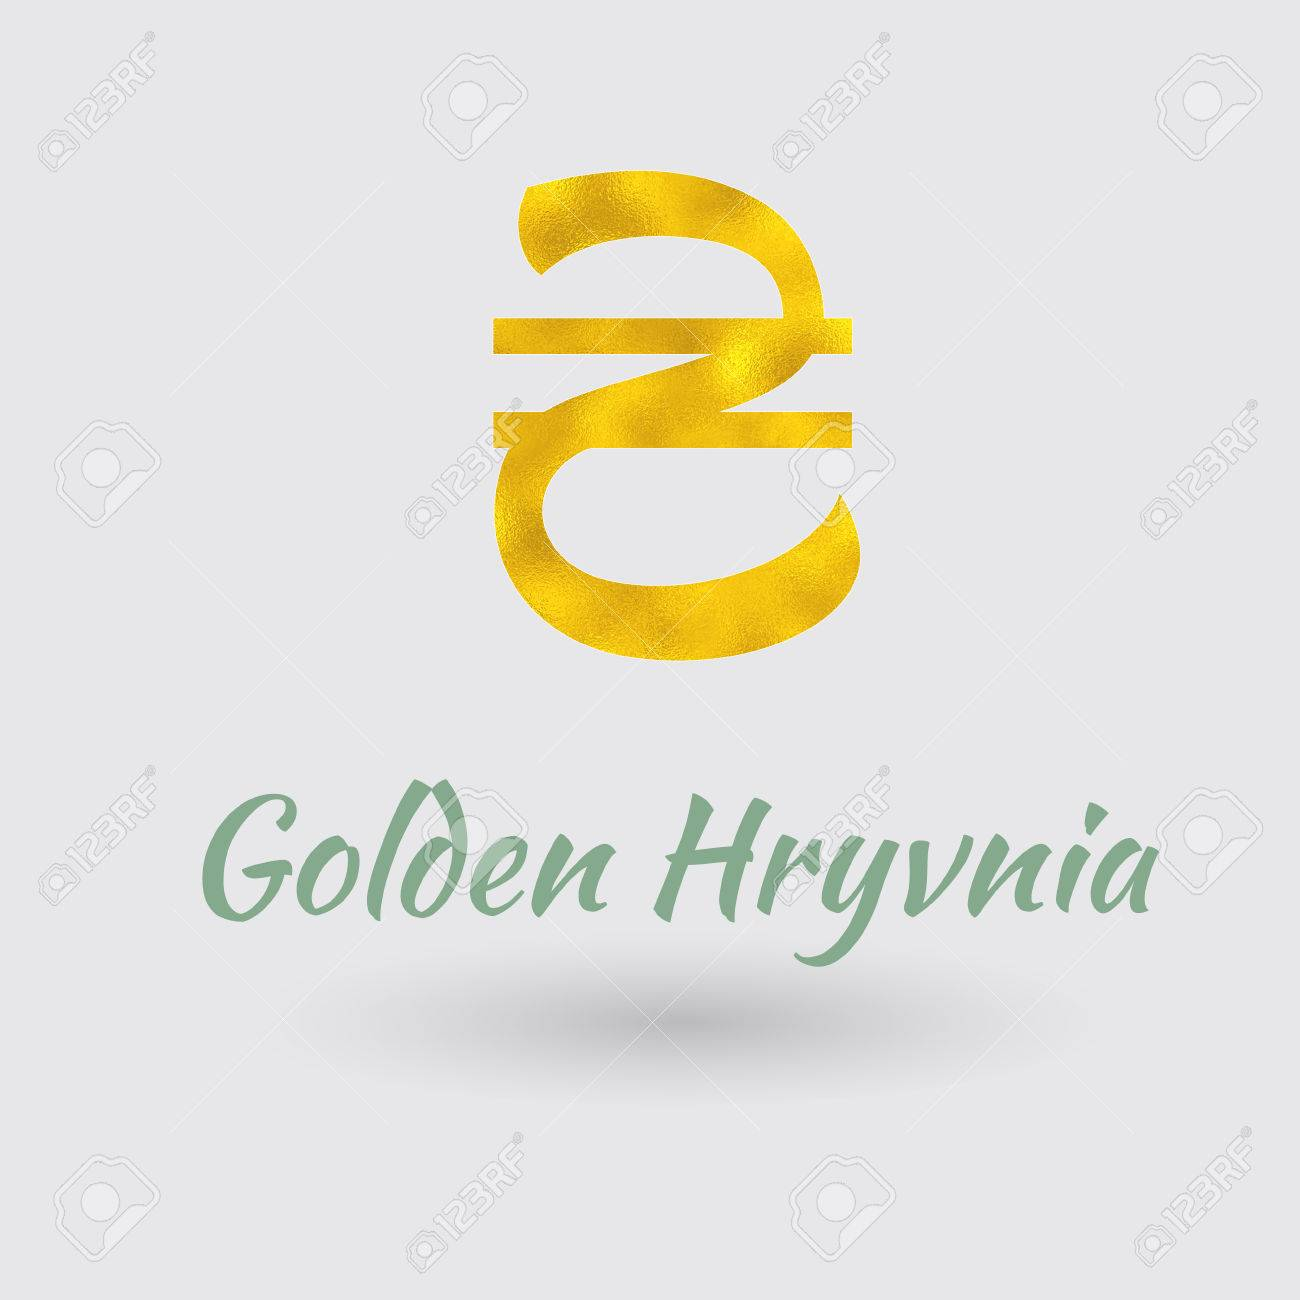 Symbol Of The Hryvnia Currency With Golden Texture Text With The